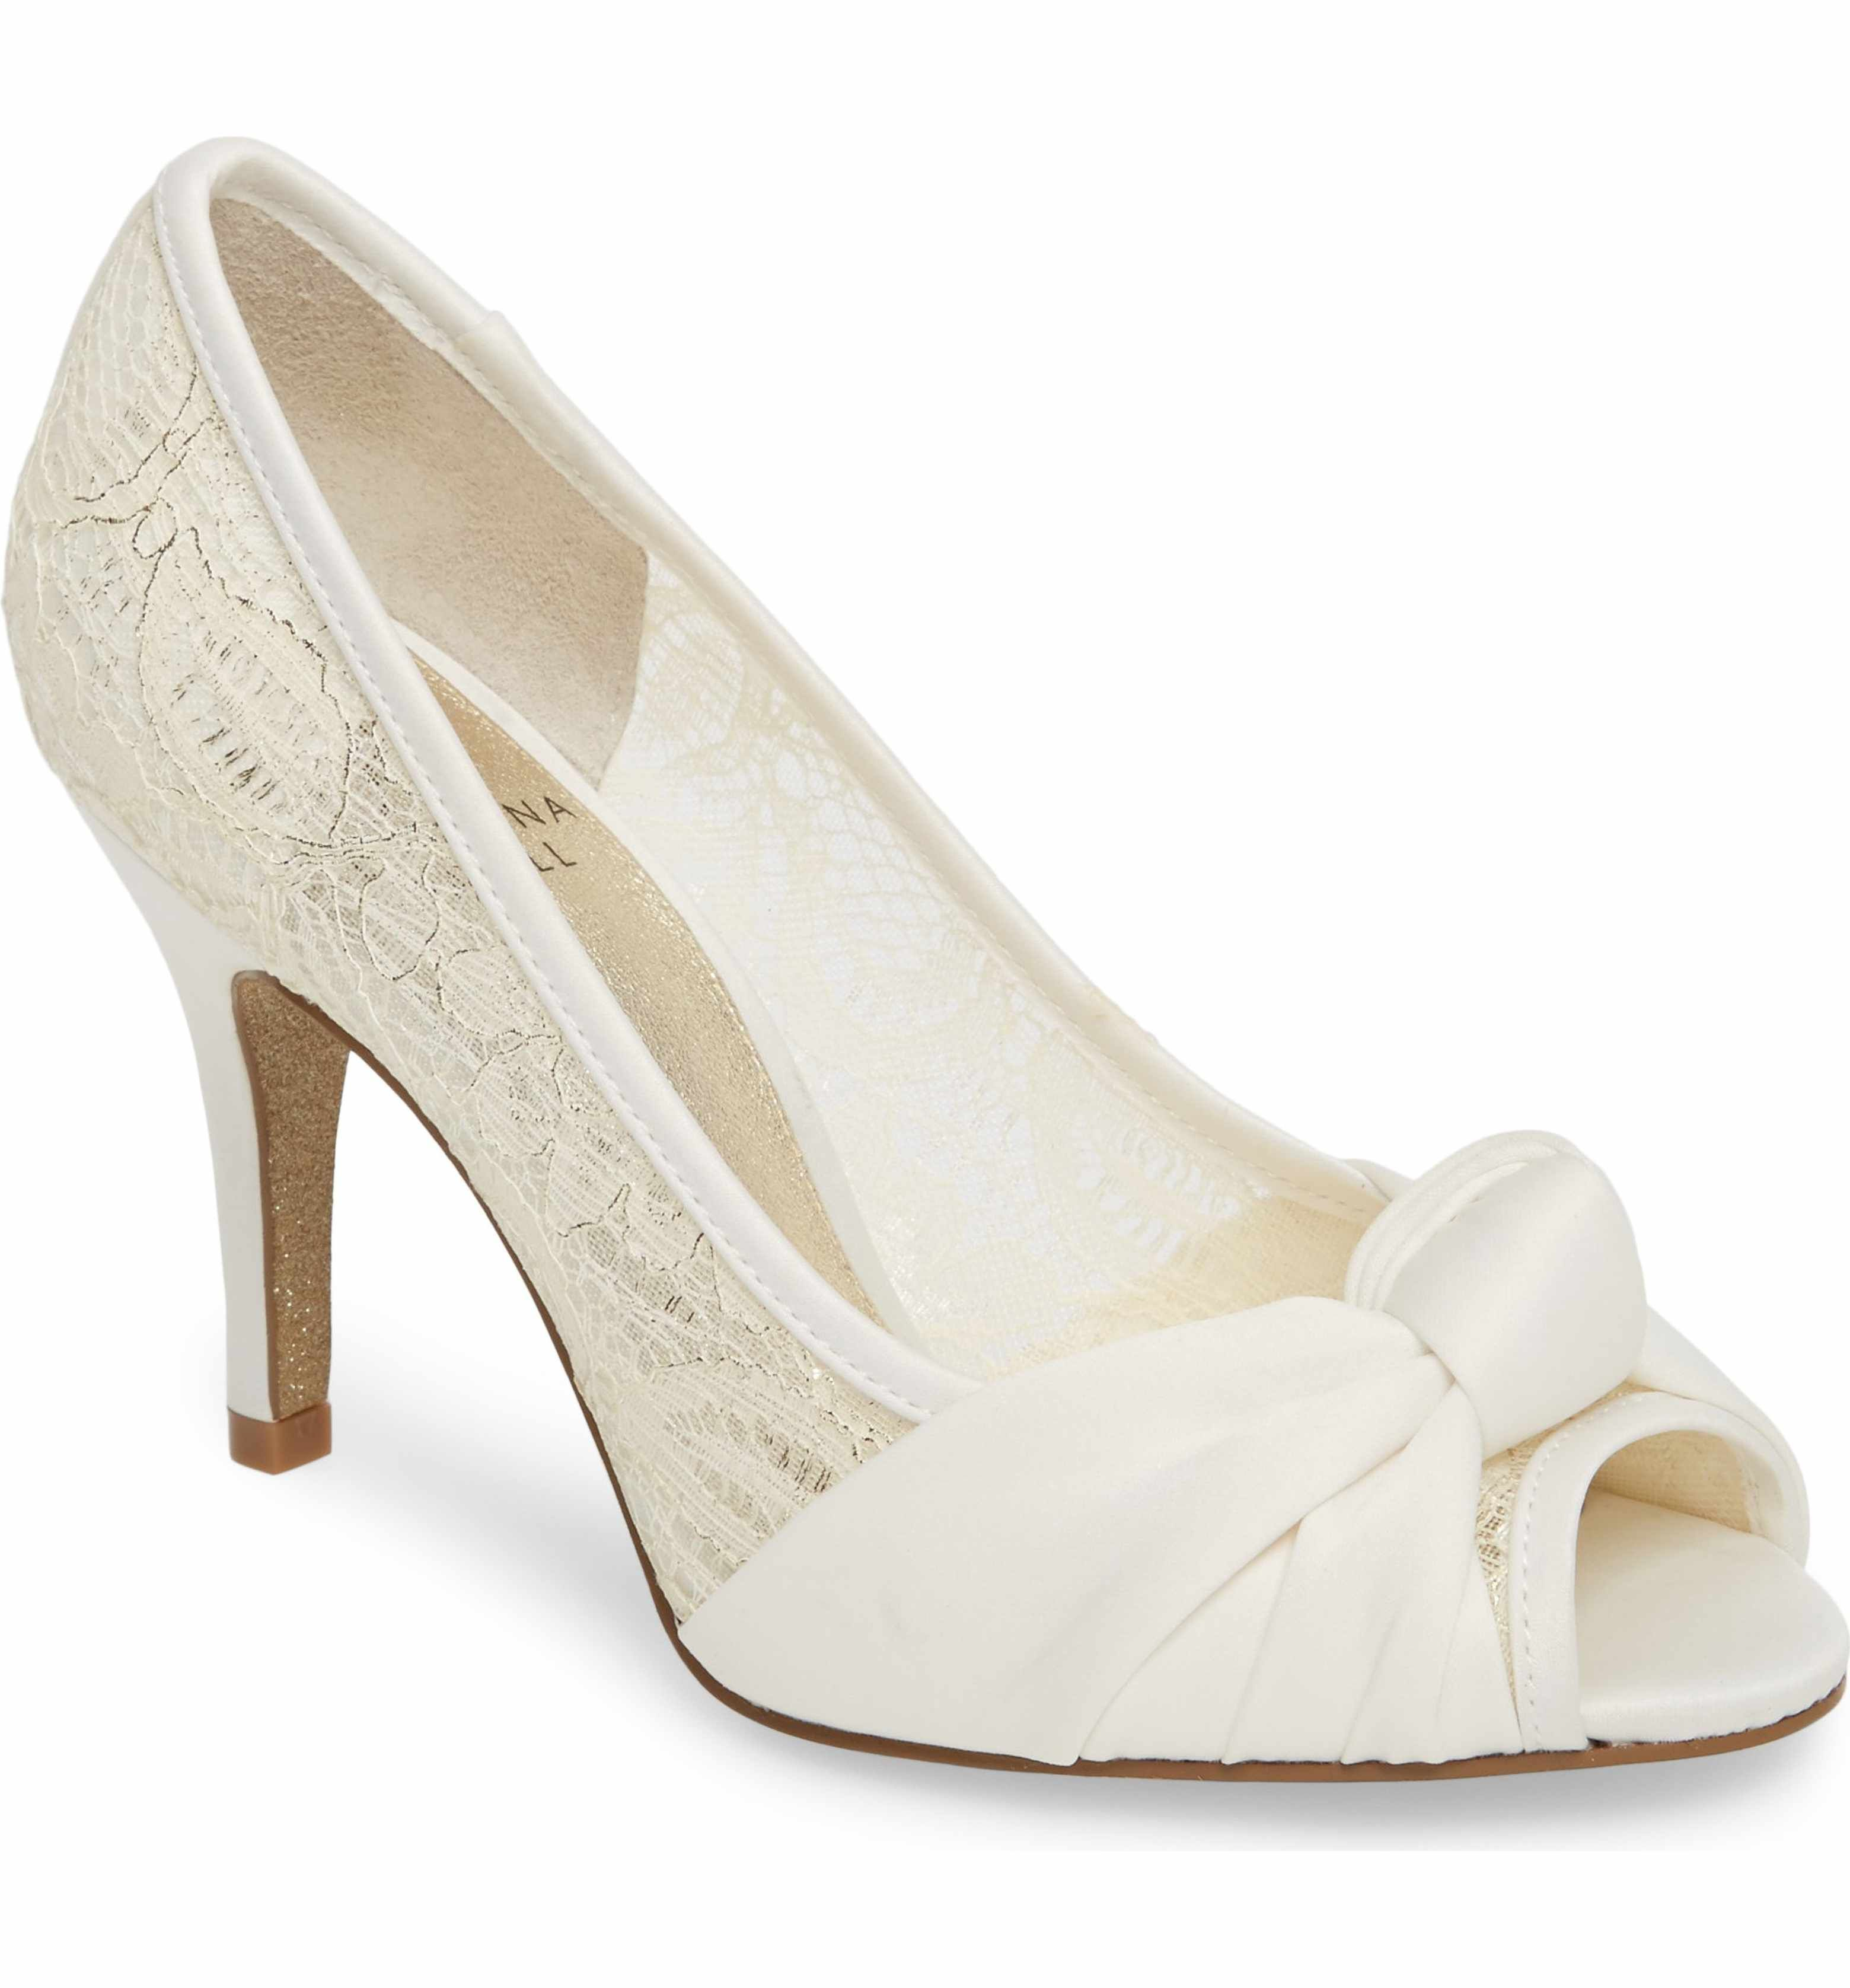 Bridal Shoes At Nordstrom: Adrianna Papell Francesca Knotted Peep Toe Pump (Women